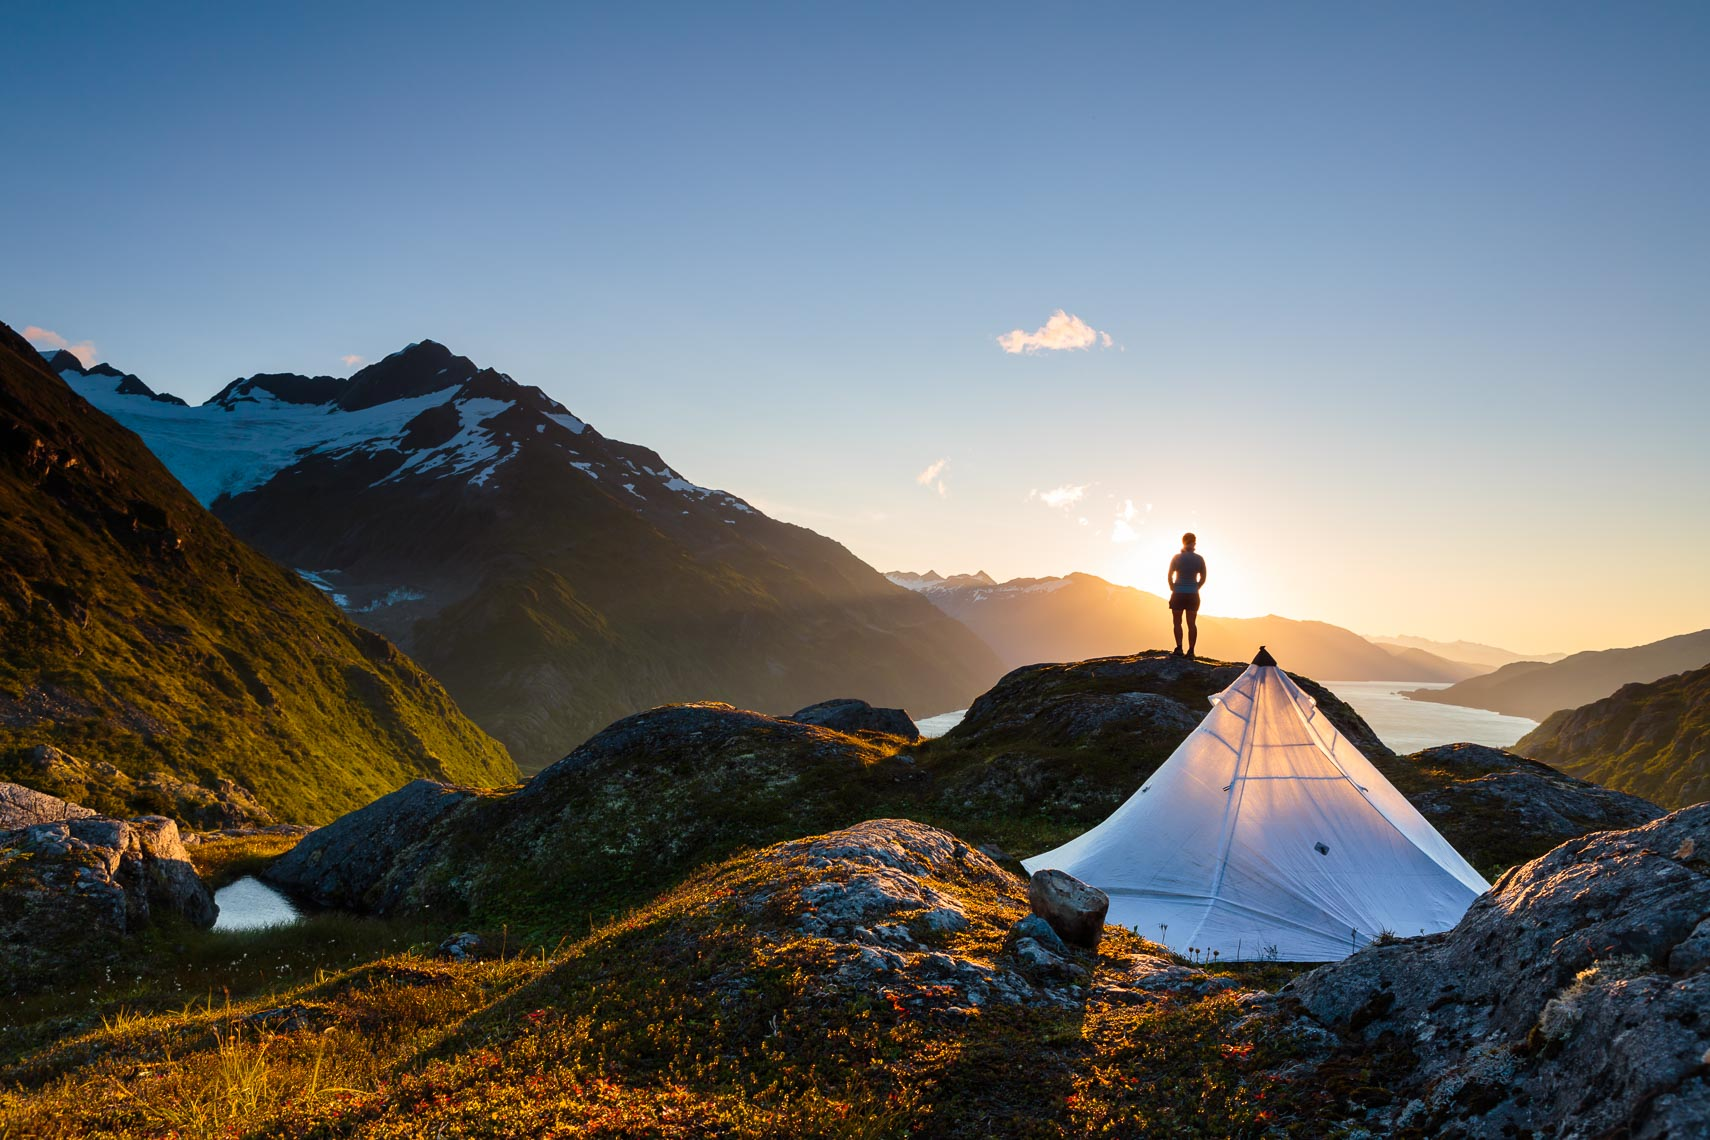 Alaska Travel Hiker At Remote Camp | Michael DeYoung